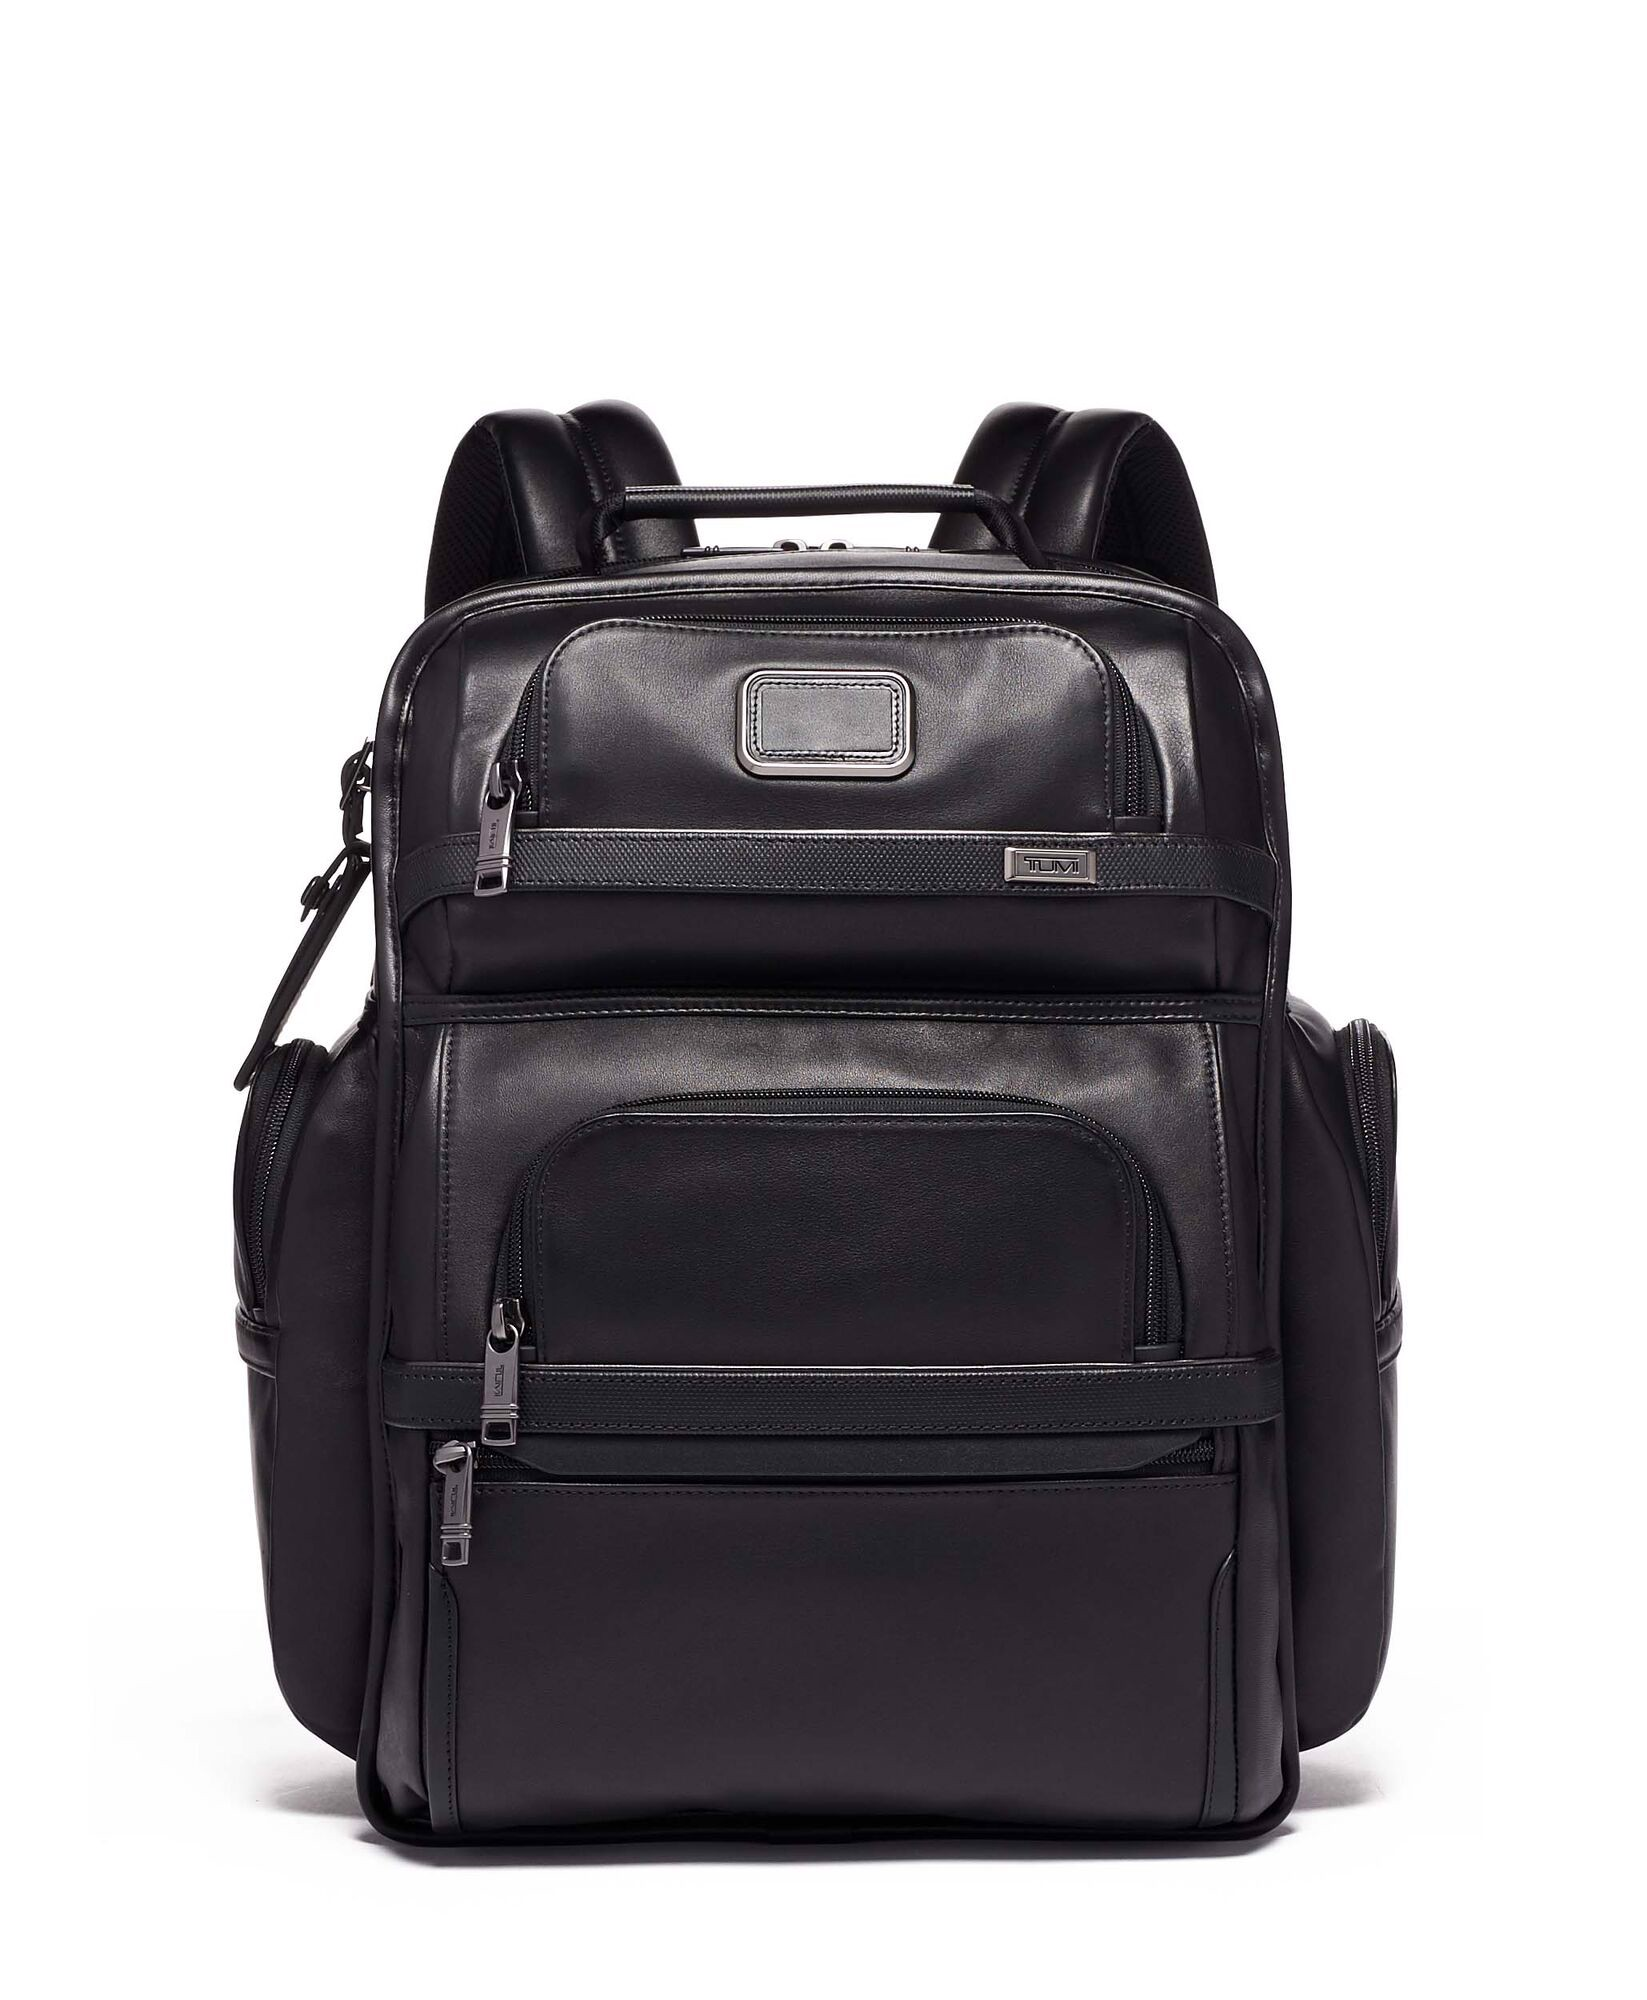 TUMI TUMI T-PASS BRIEF PACK (09603578DL3)